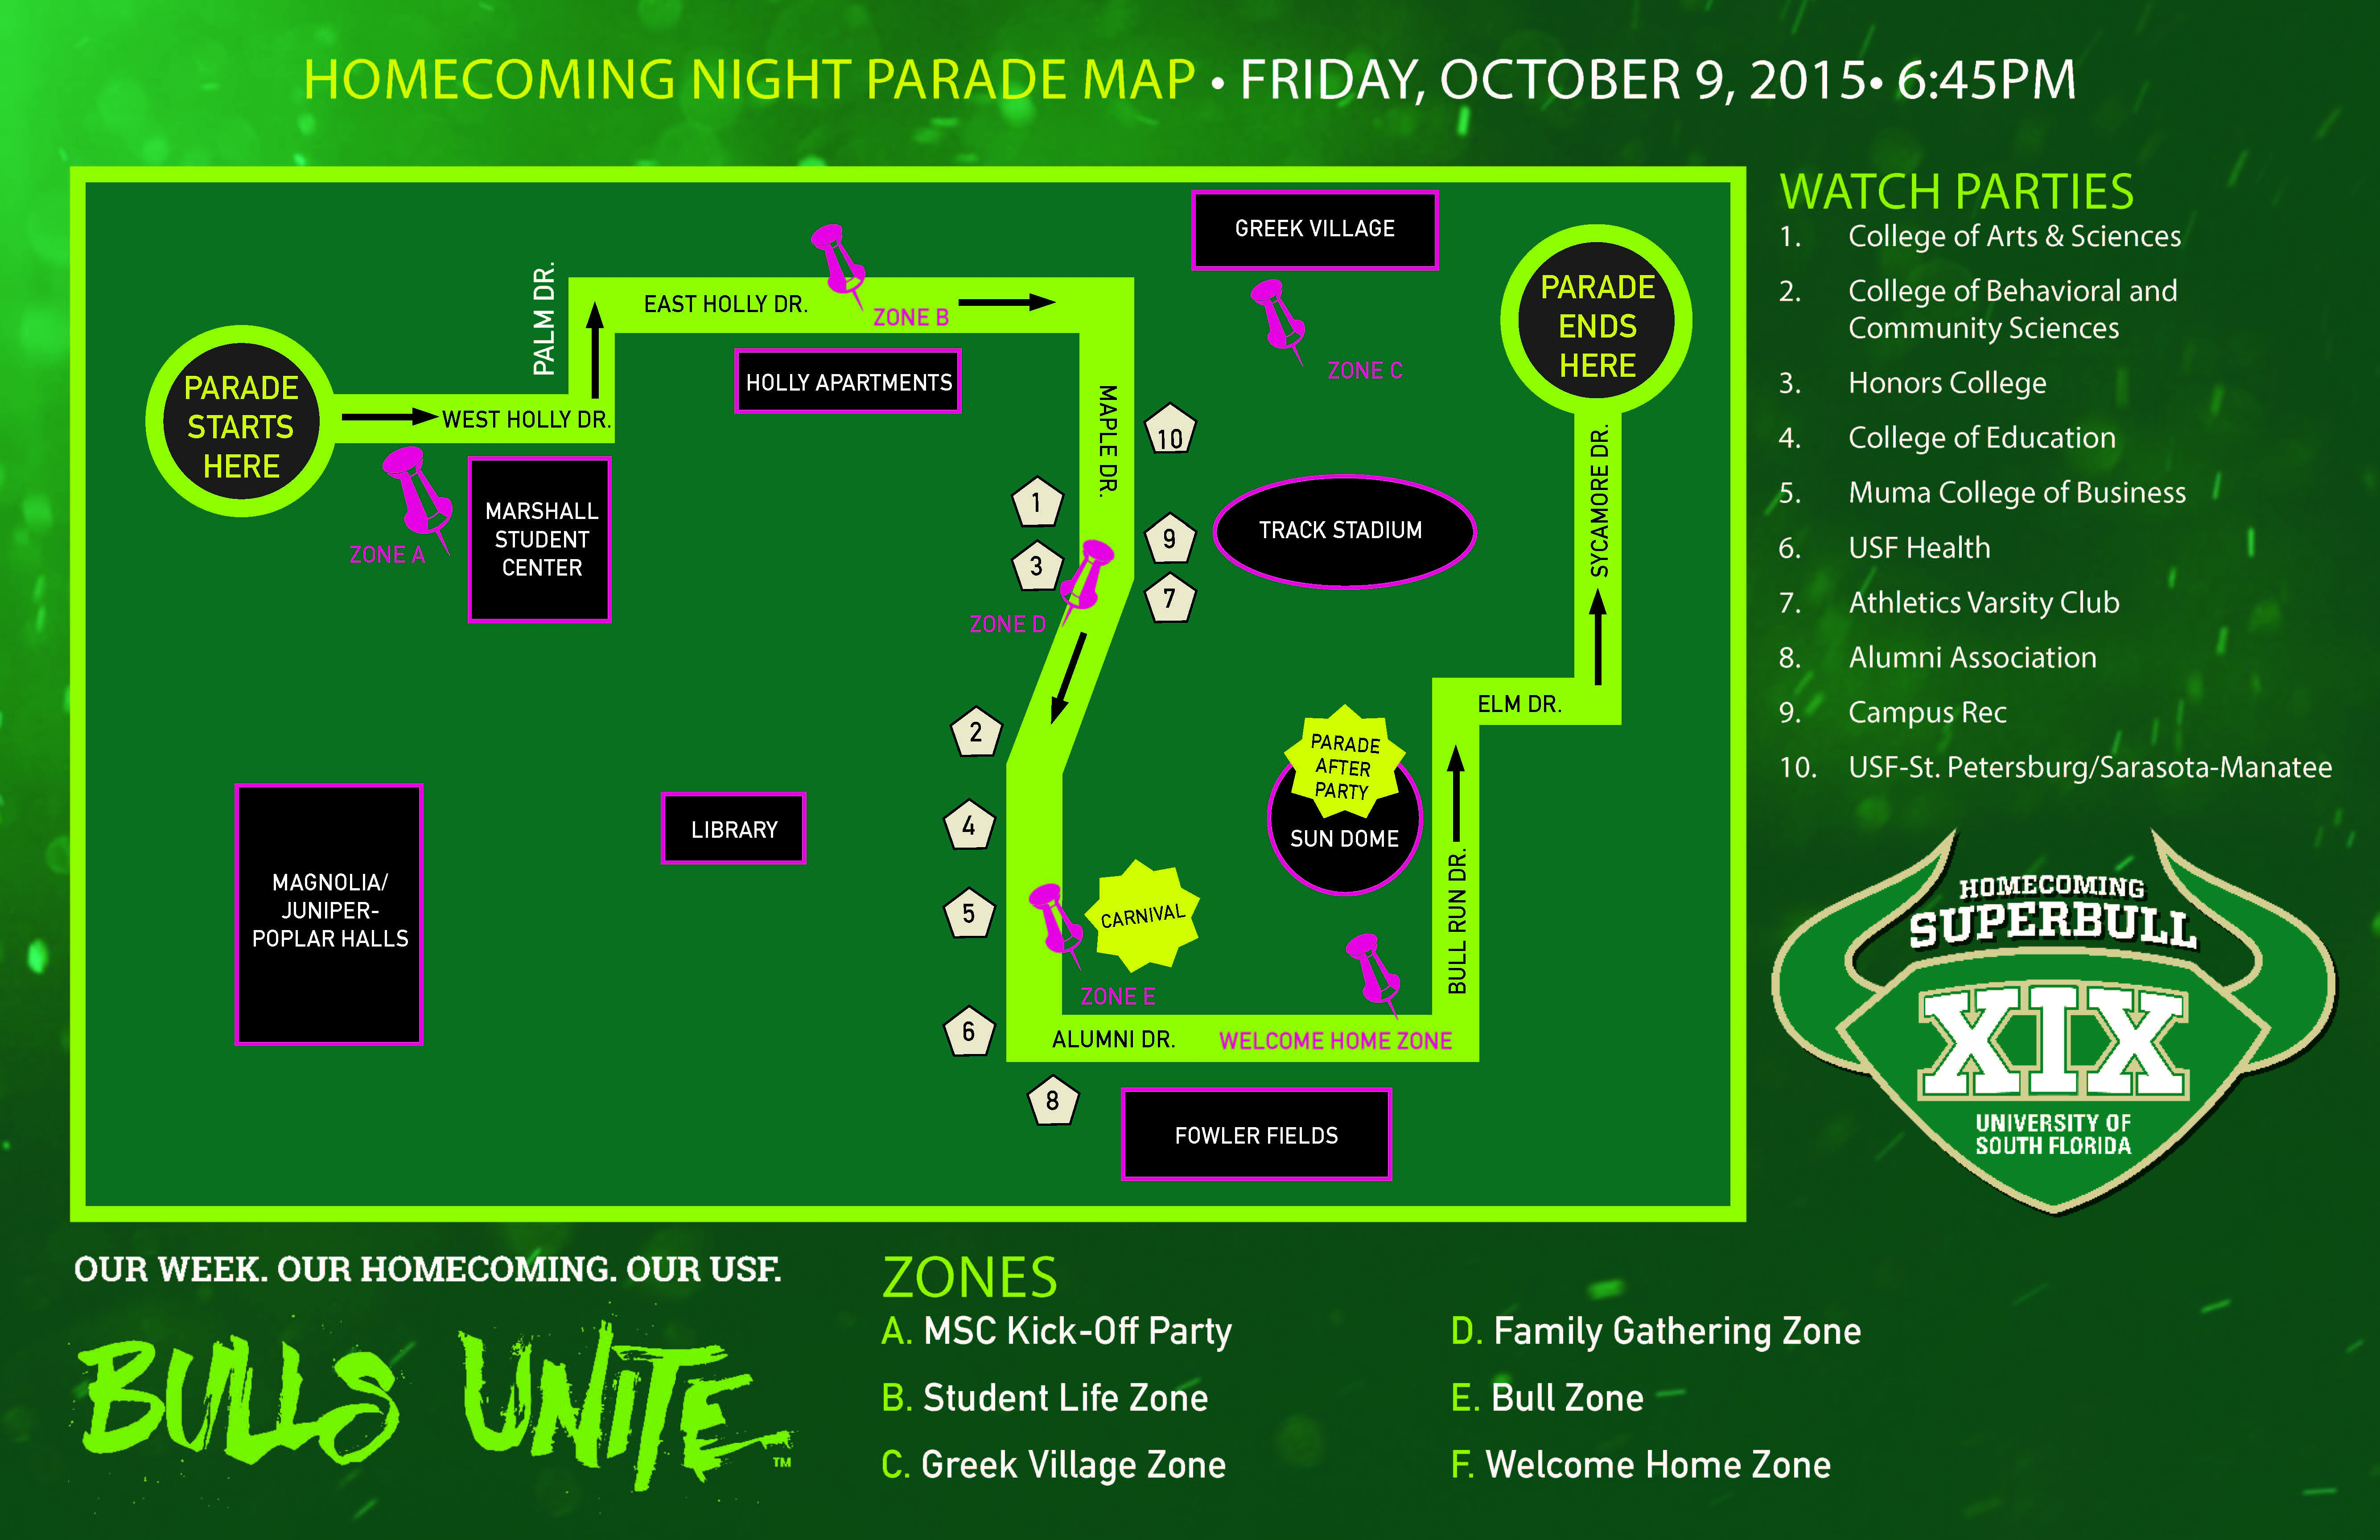 Homecoming 2015 Parade Route